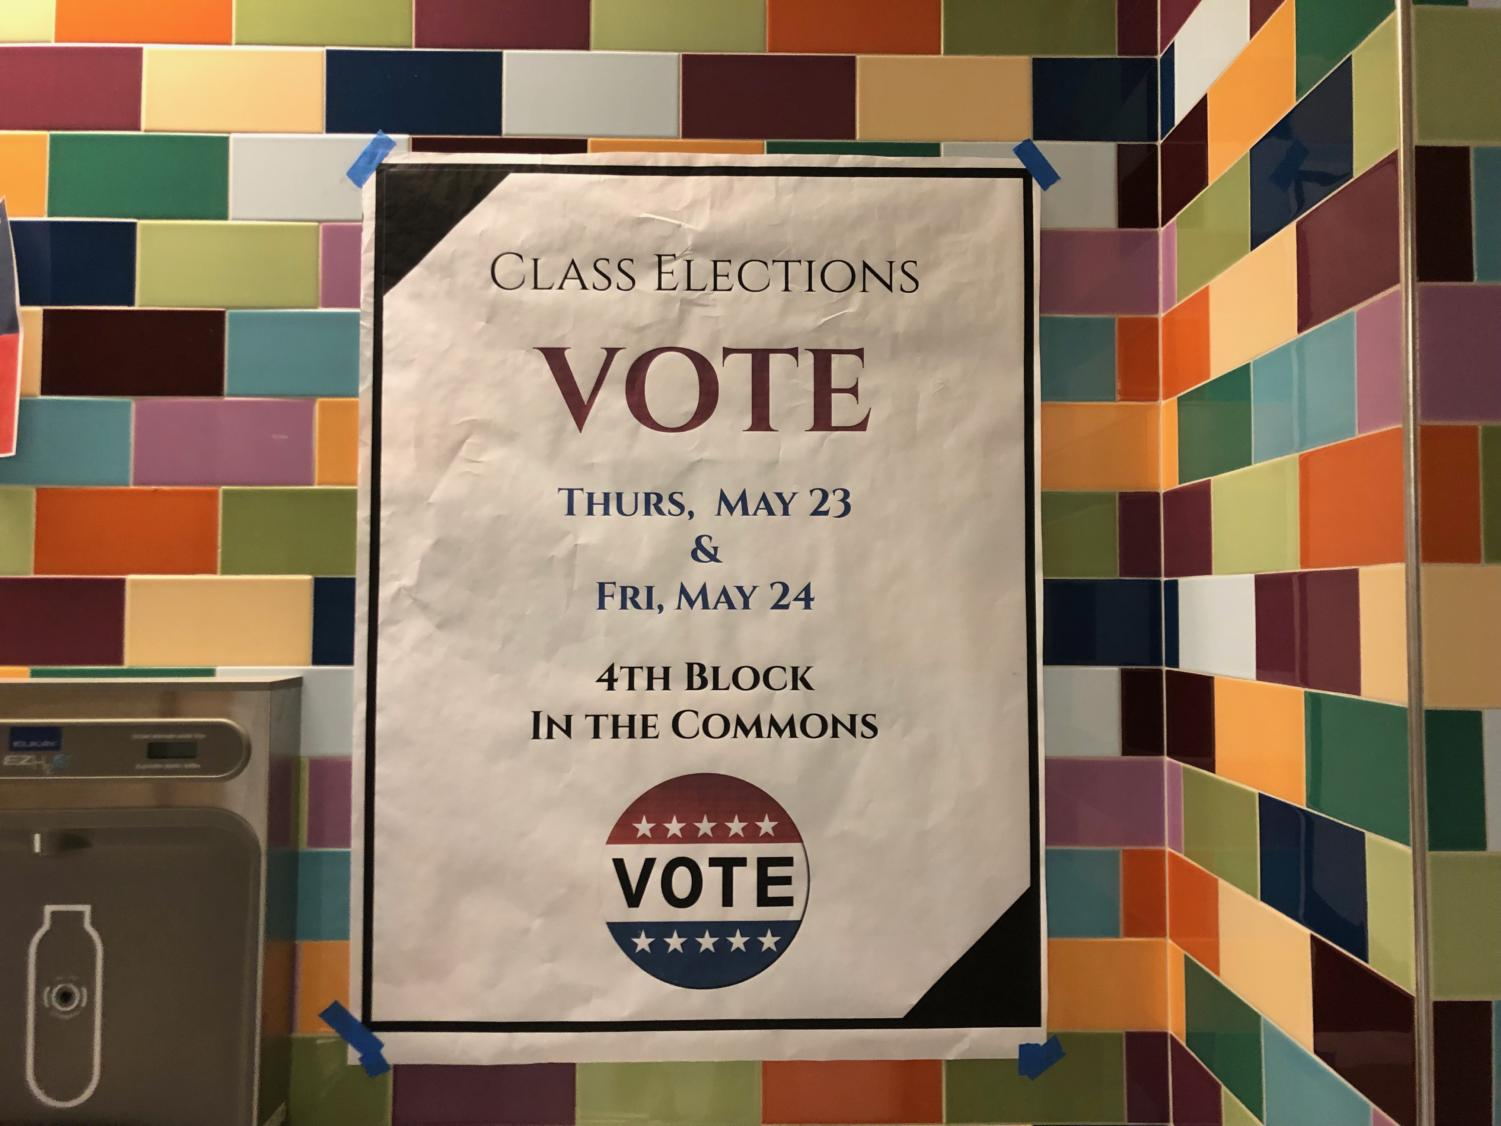 Check here for updates about the 2019 e-board elections.